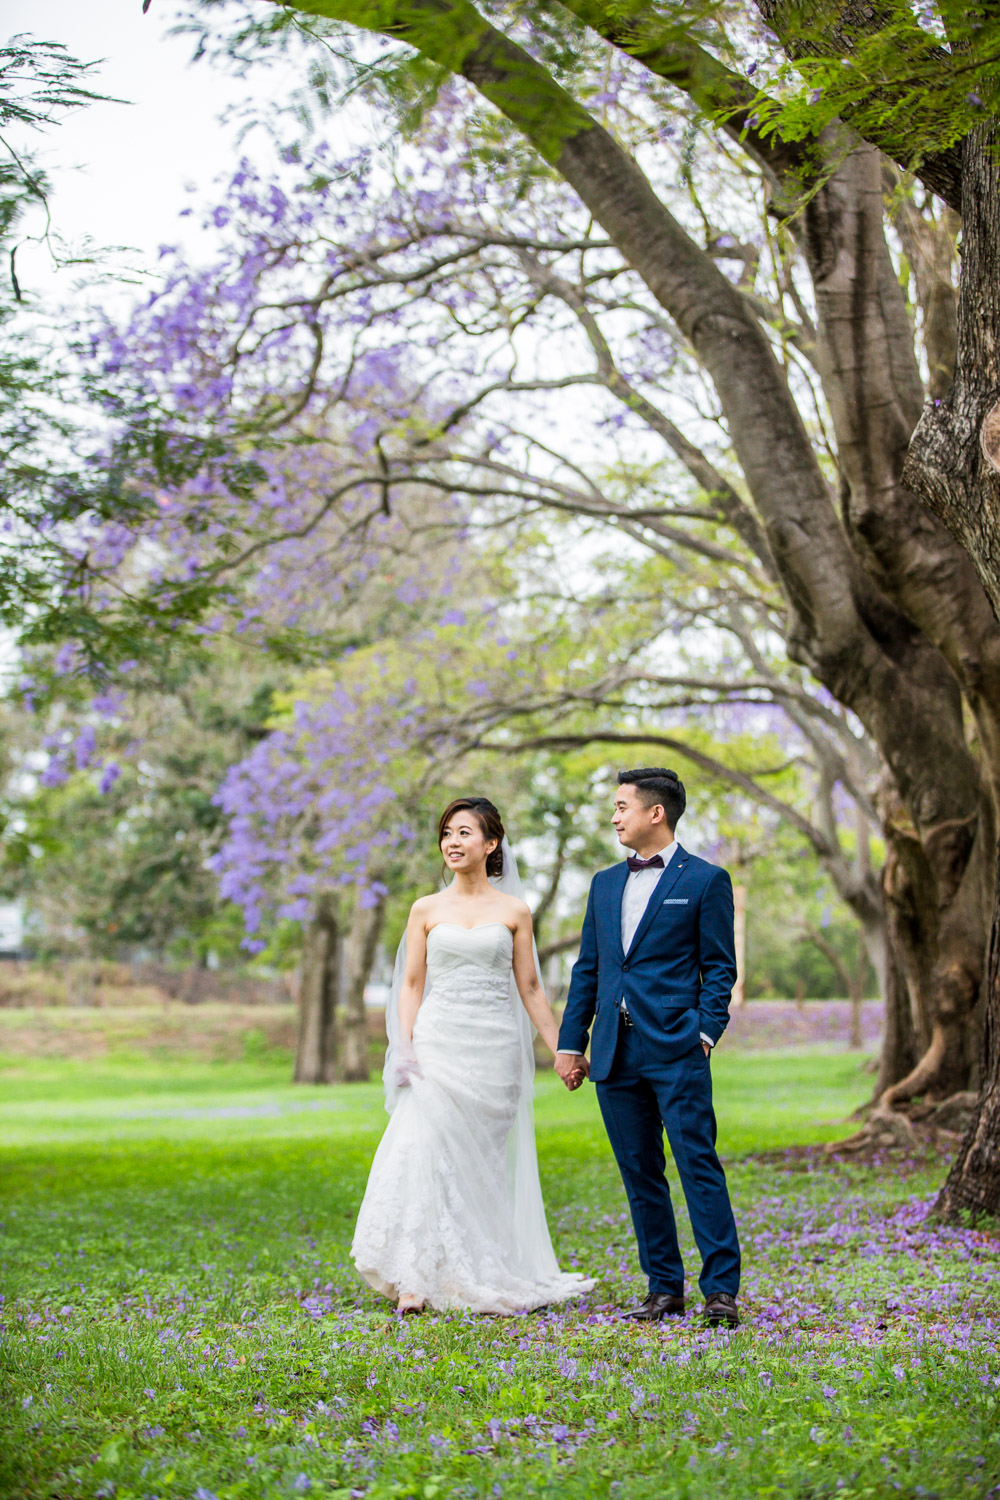 171012 Puremotion Wedding Photography Brisbane Park Jacaranda MekBernie-0050